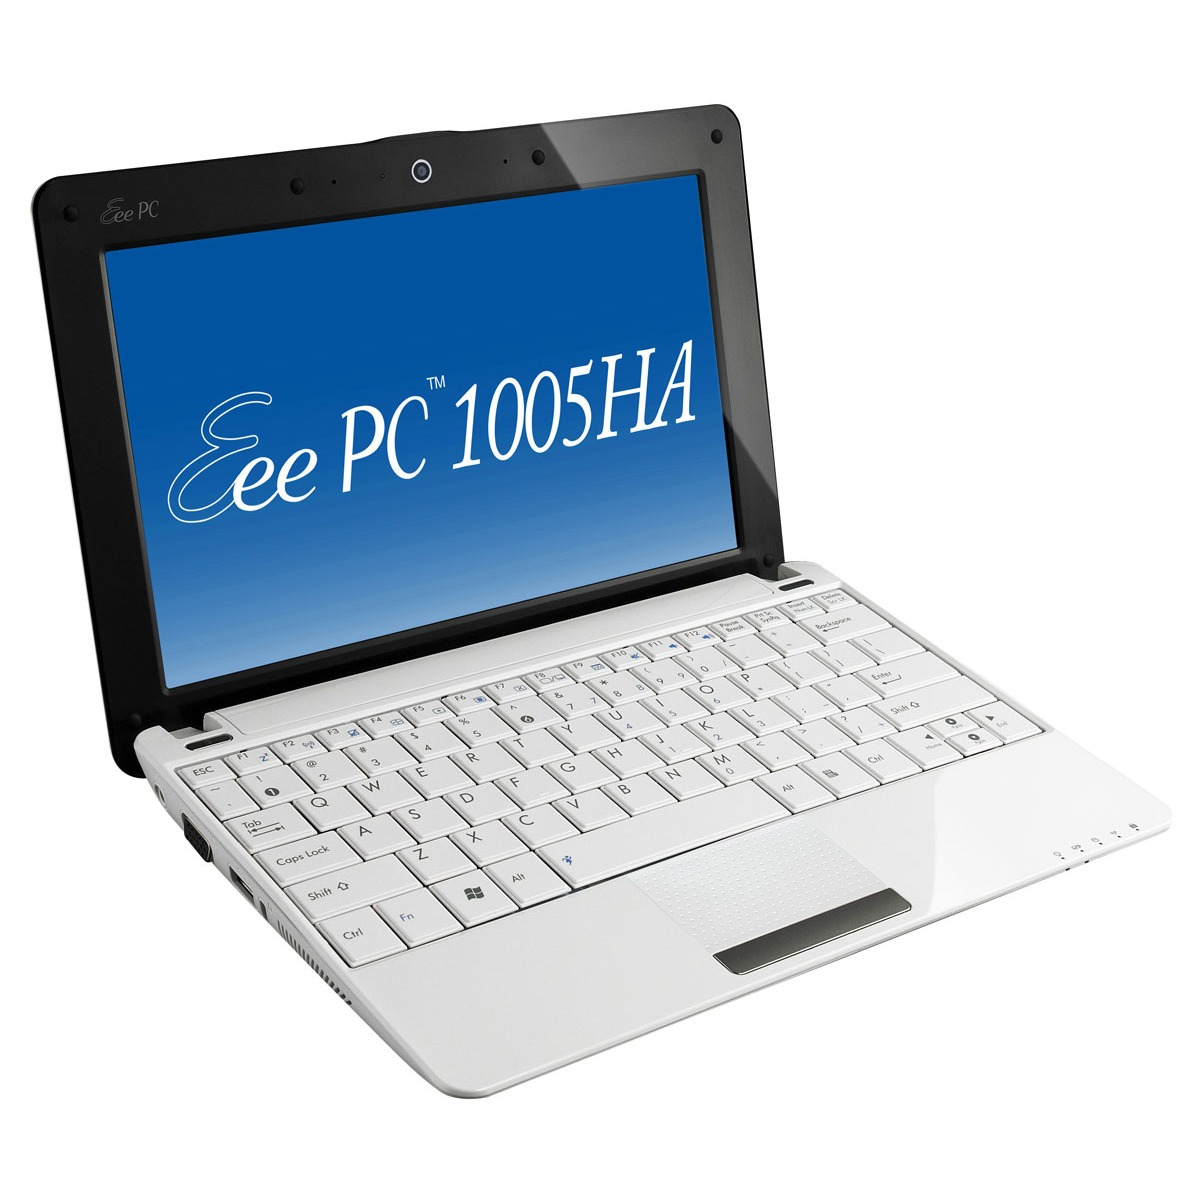 "LDLC.com ASUS Eee PC 1005HA-H Blanc ASUS Eee PC 1005HA-H Blanc - Intel Atom N280 1 Go 250 Go 10"" TFT Wi-Fi N/Bluetooth Webcam Windows 7 Starter"